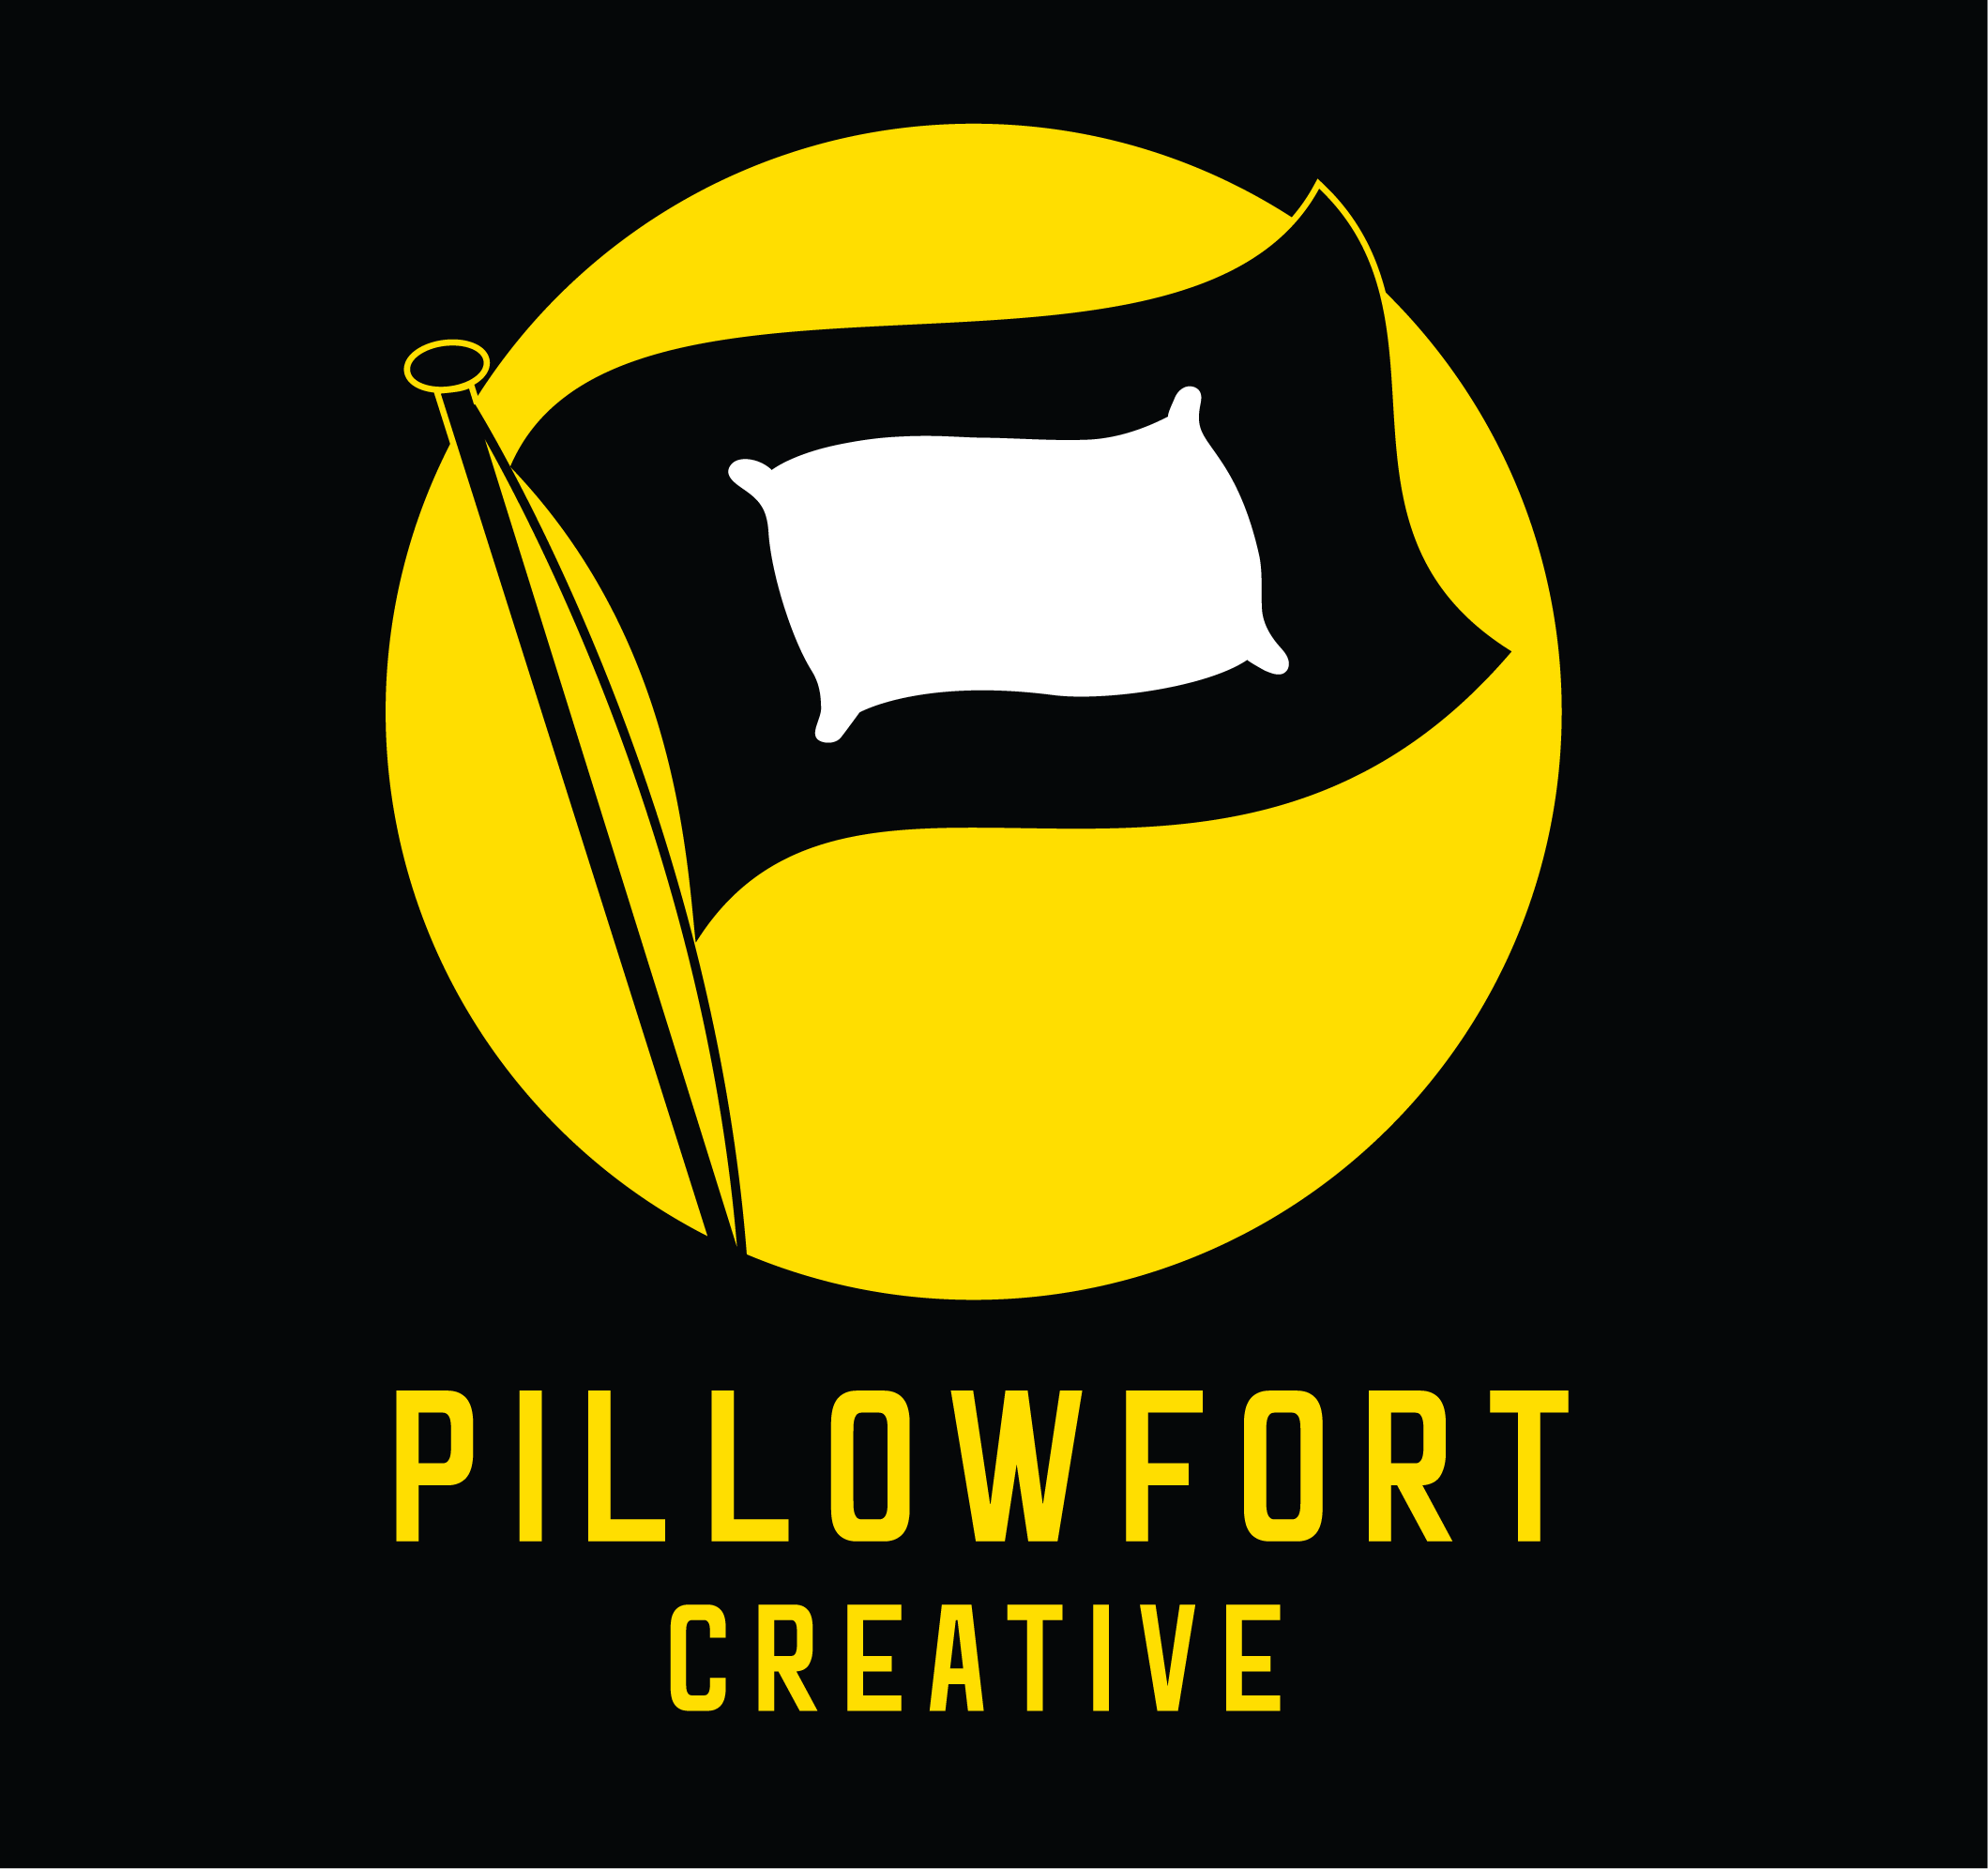 Pillowfort Creative